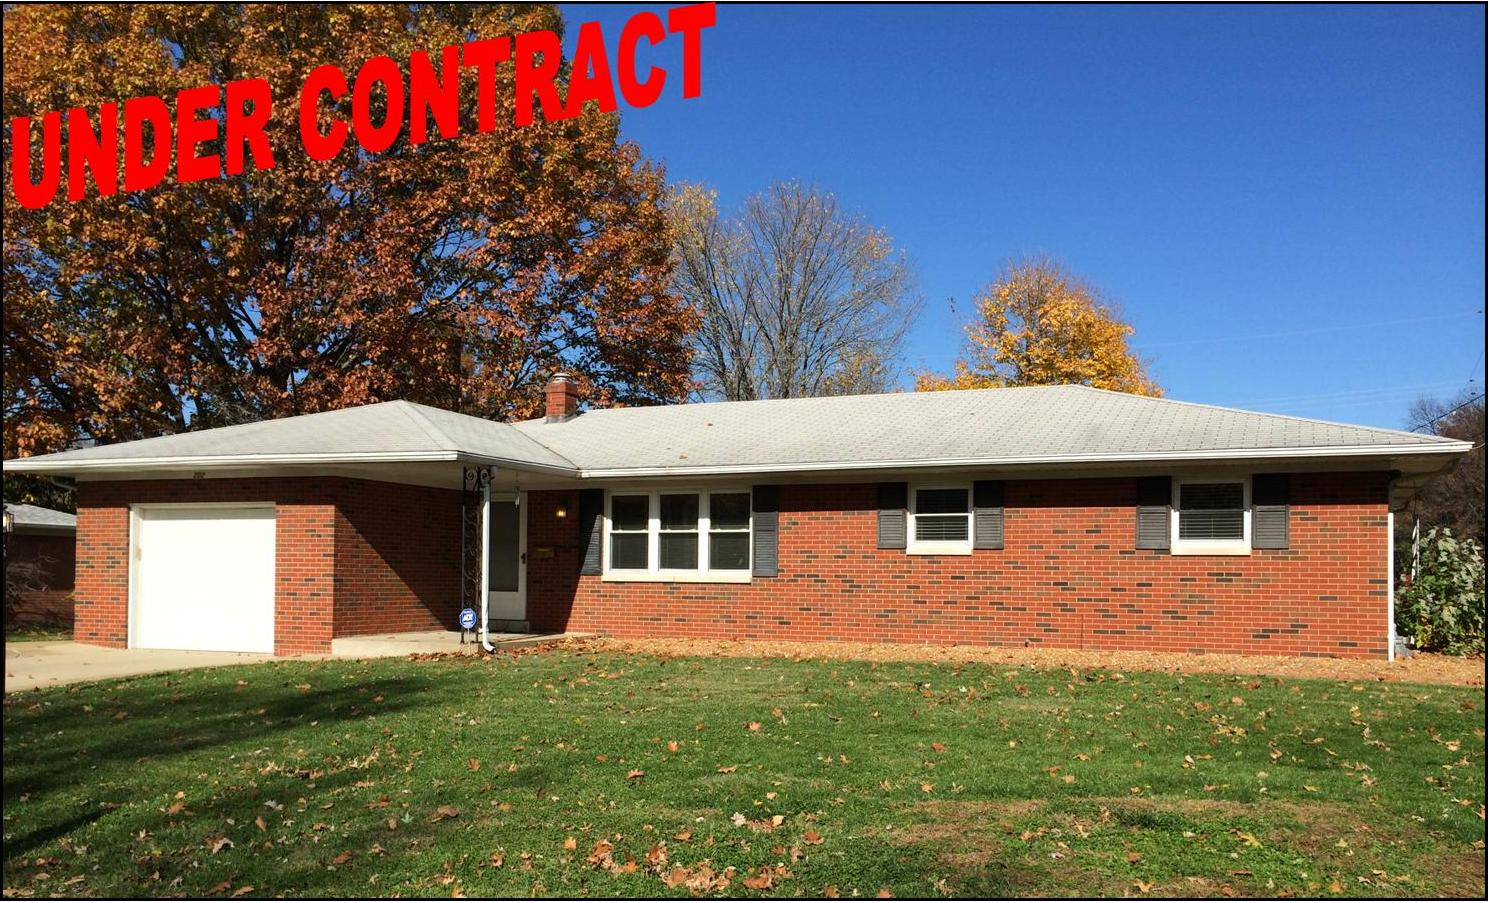 202 Fontainebleau OFallon IL Under Contract Yolanda Realtor